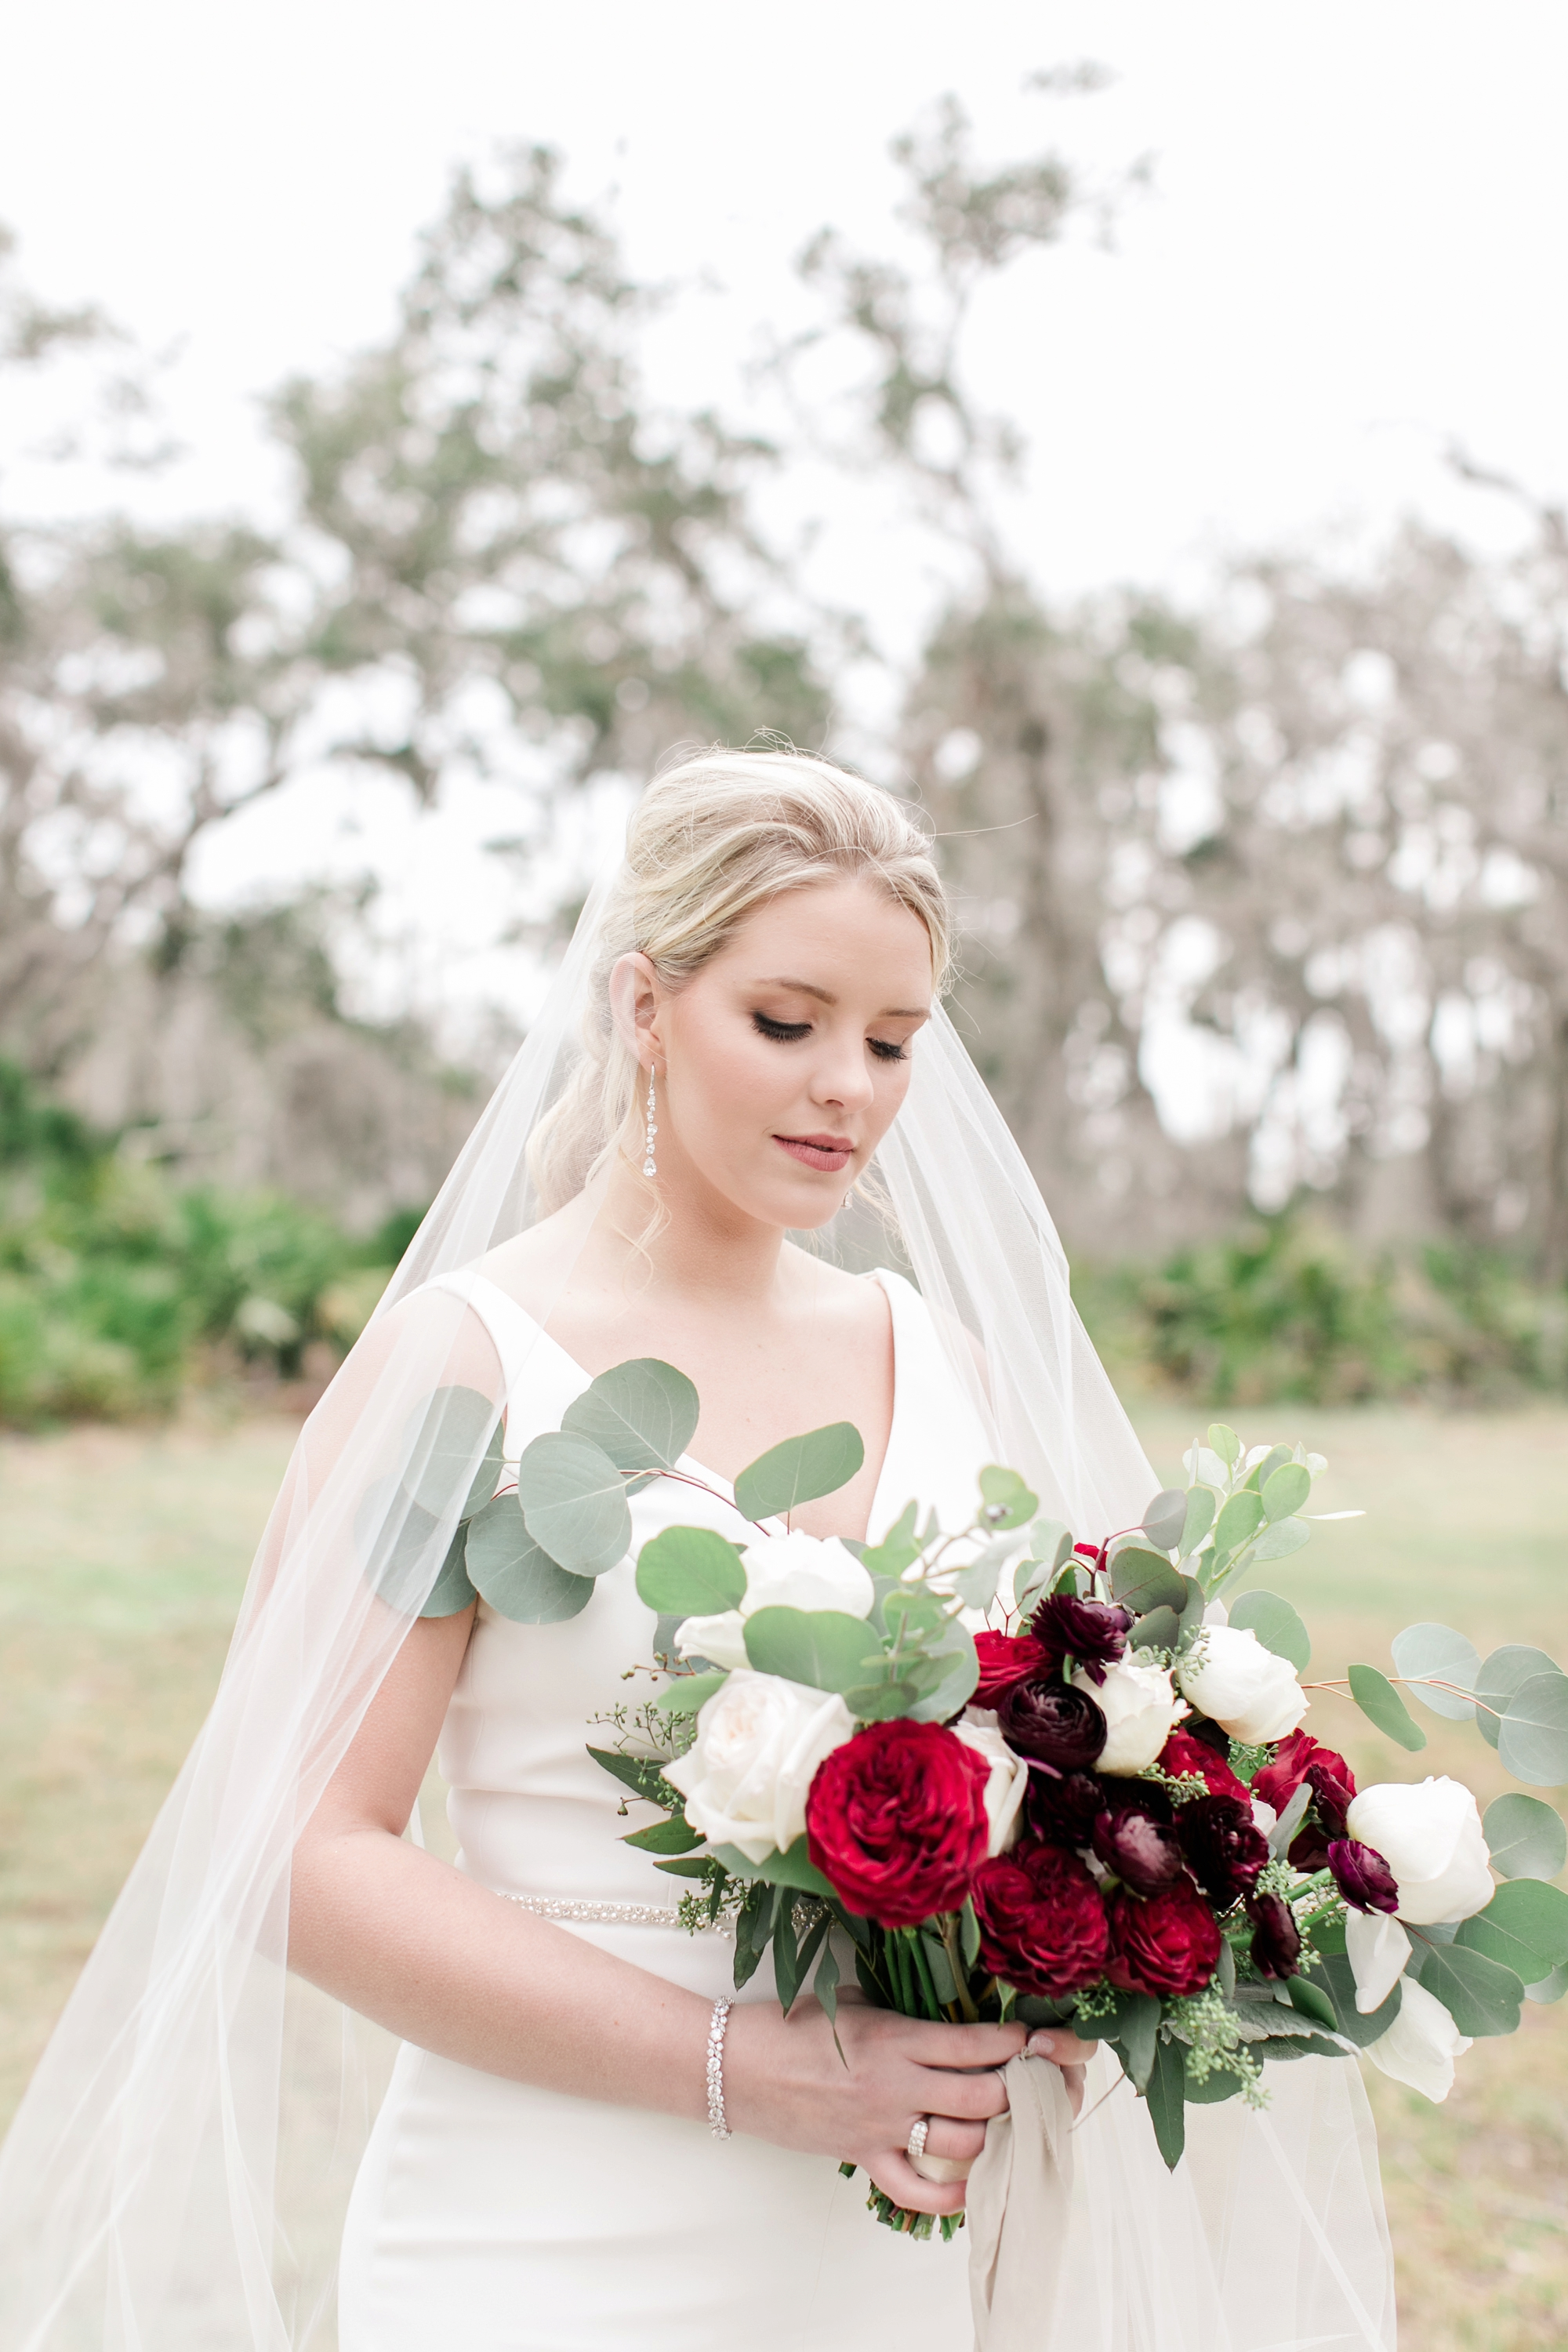 Steven & Lauren Palm CoastWedding - Natalie Broach Photography